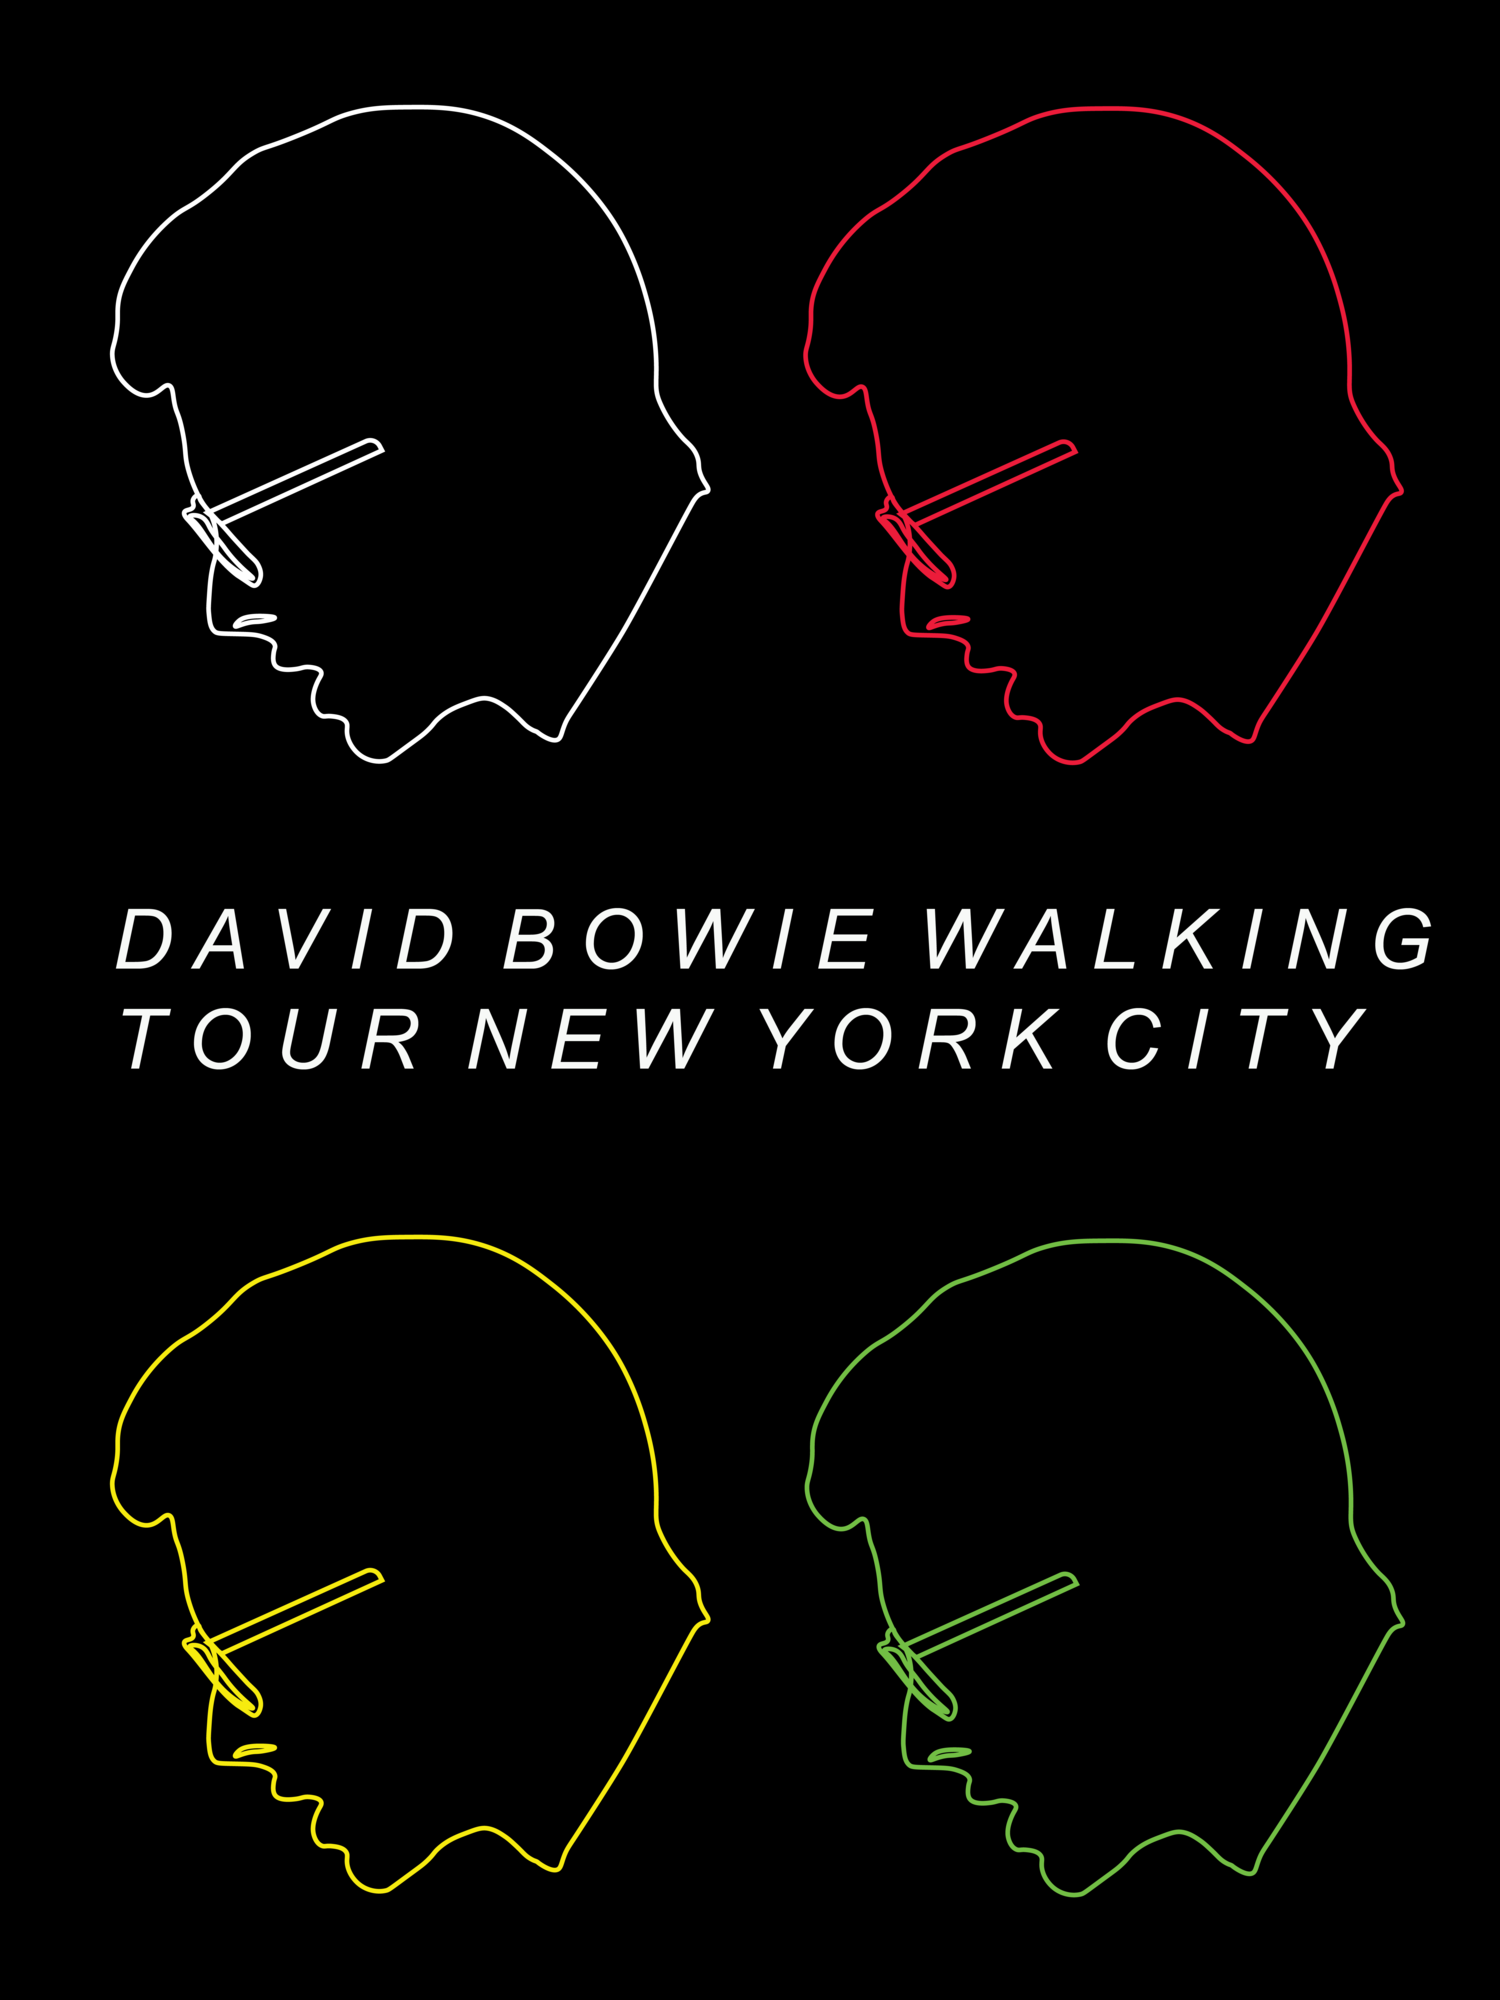 DAVID BOWIE WALKING TOUR NEW YORK CITY